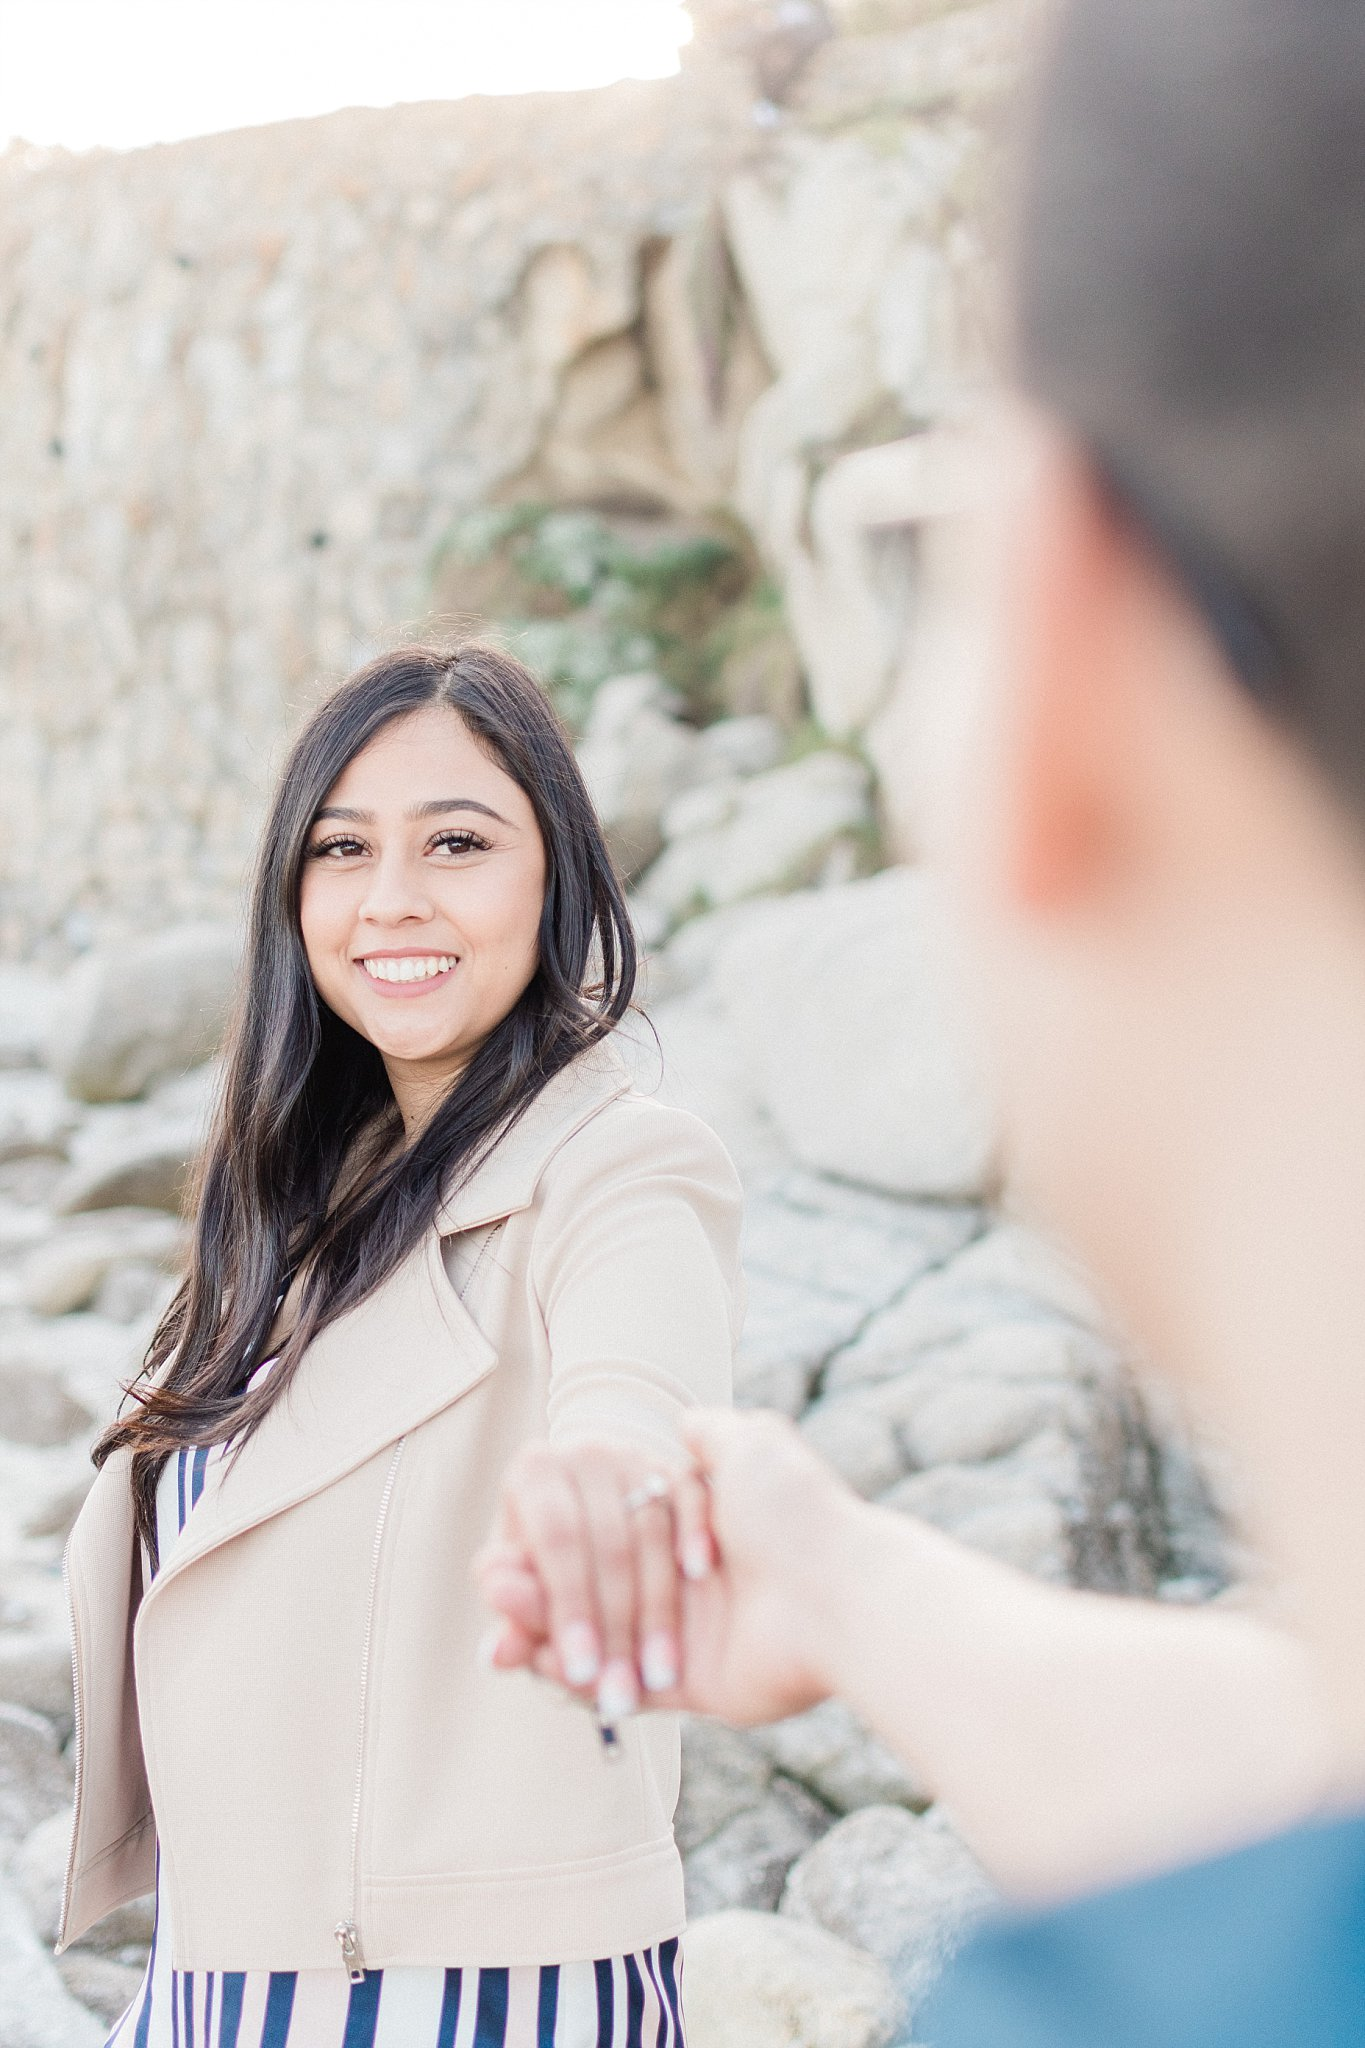 monterey-engagement-photographer-city-hall-drew-zavala-khrystal-chris_0064.jpg